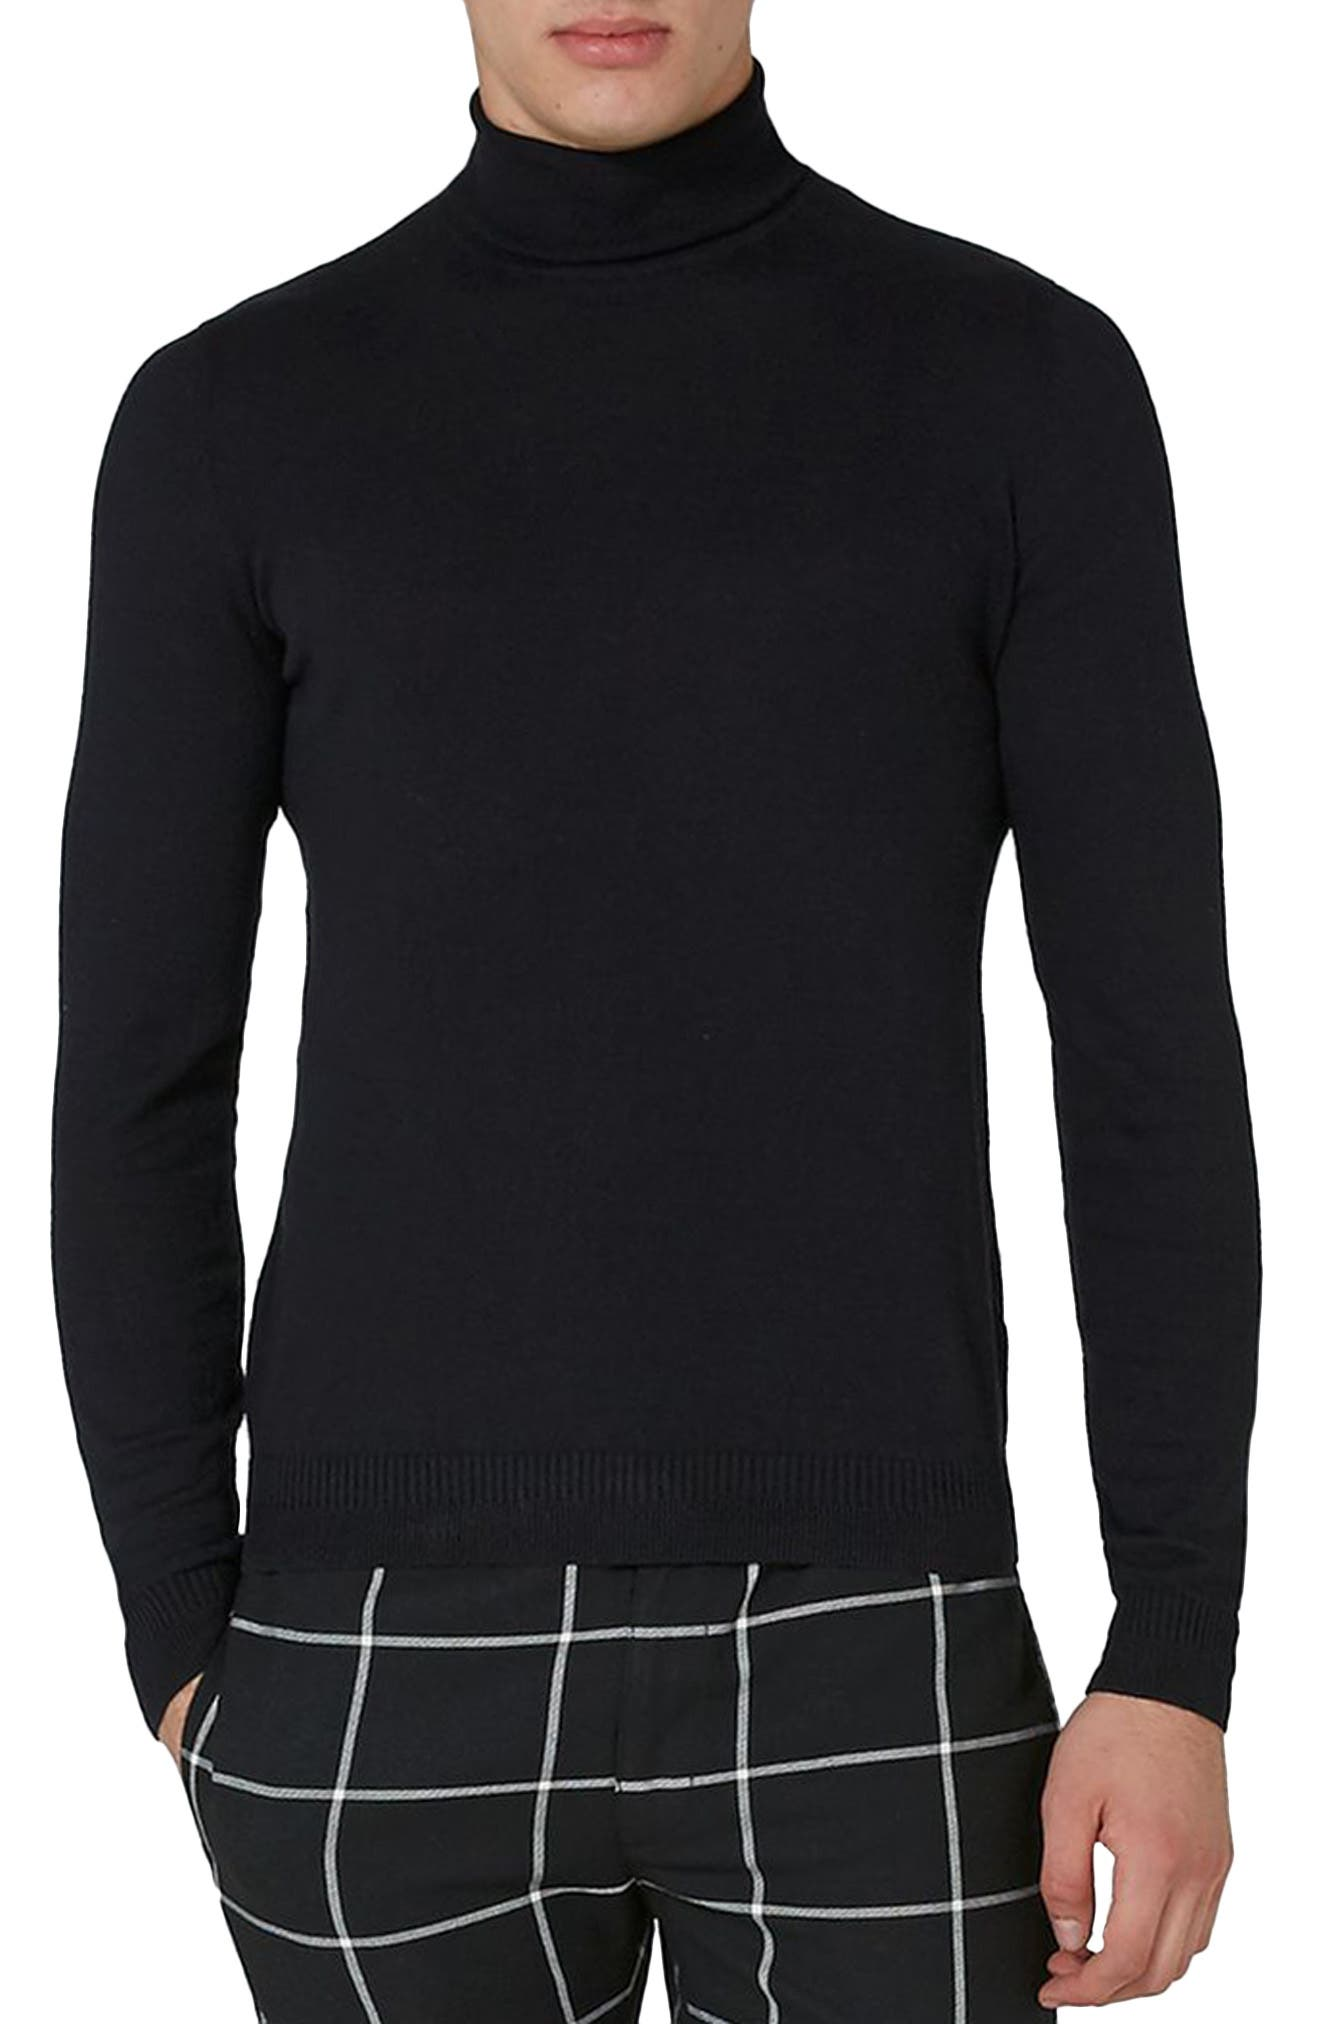 Topman Cotton Turtleneck Sweater